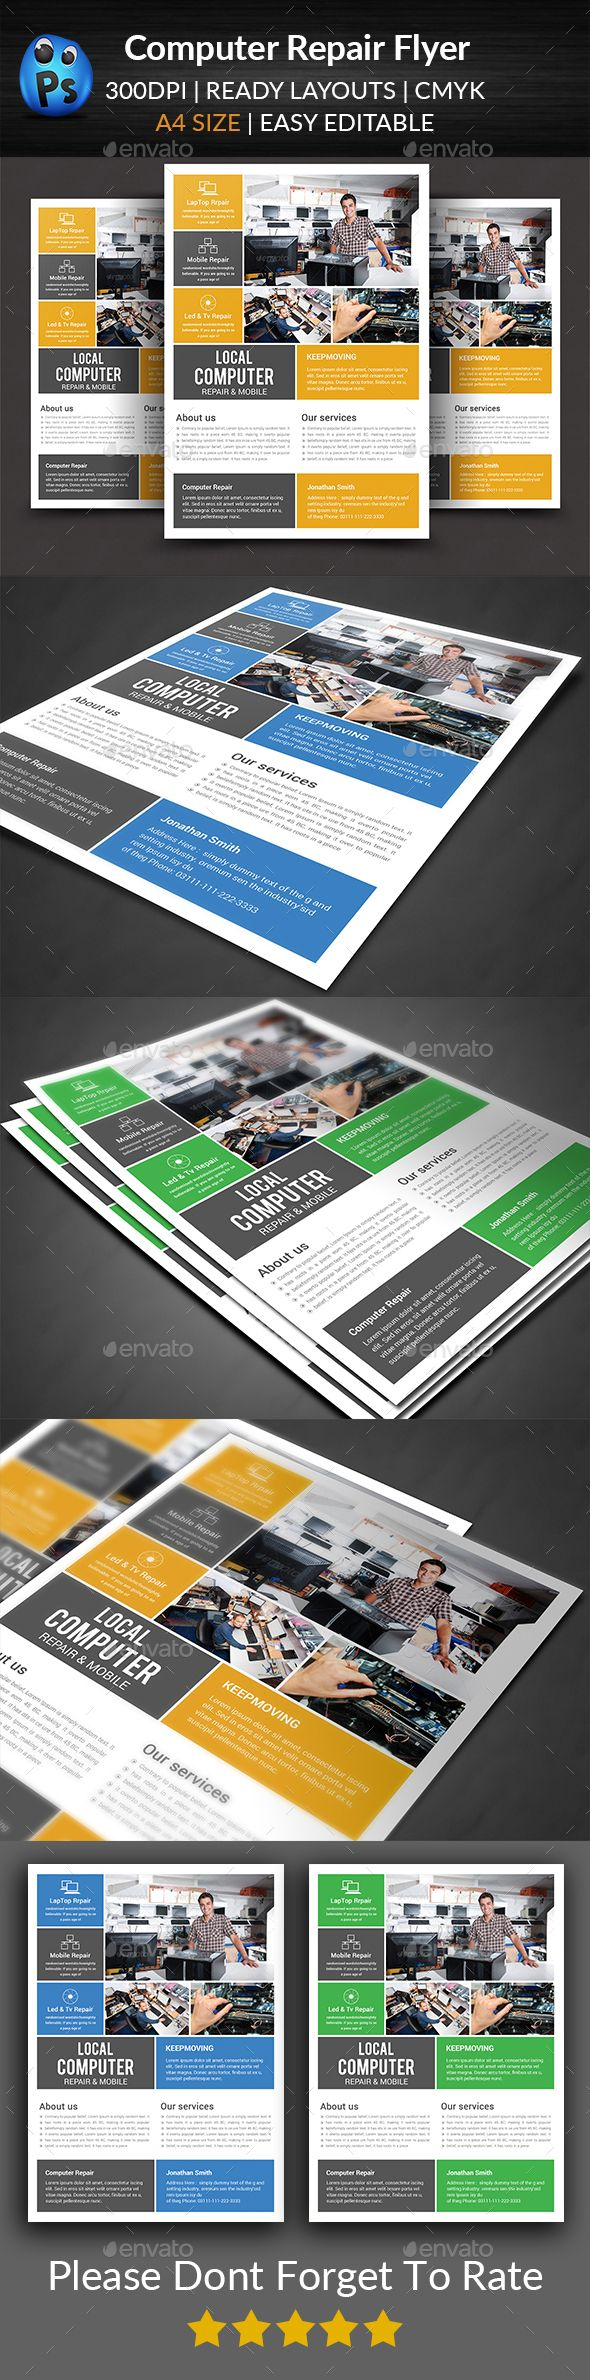 Computer Mobile Repair Flyer Template Psd Flyer Templates